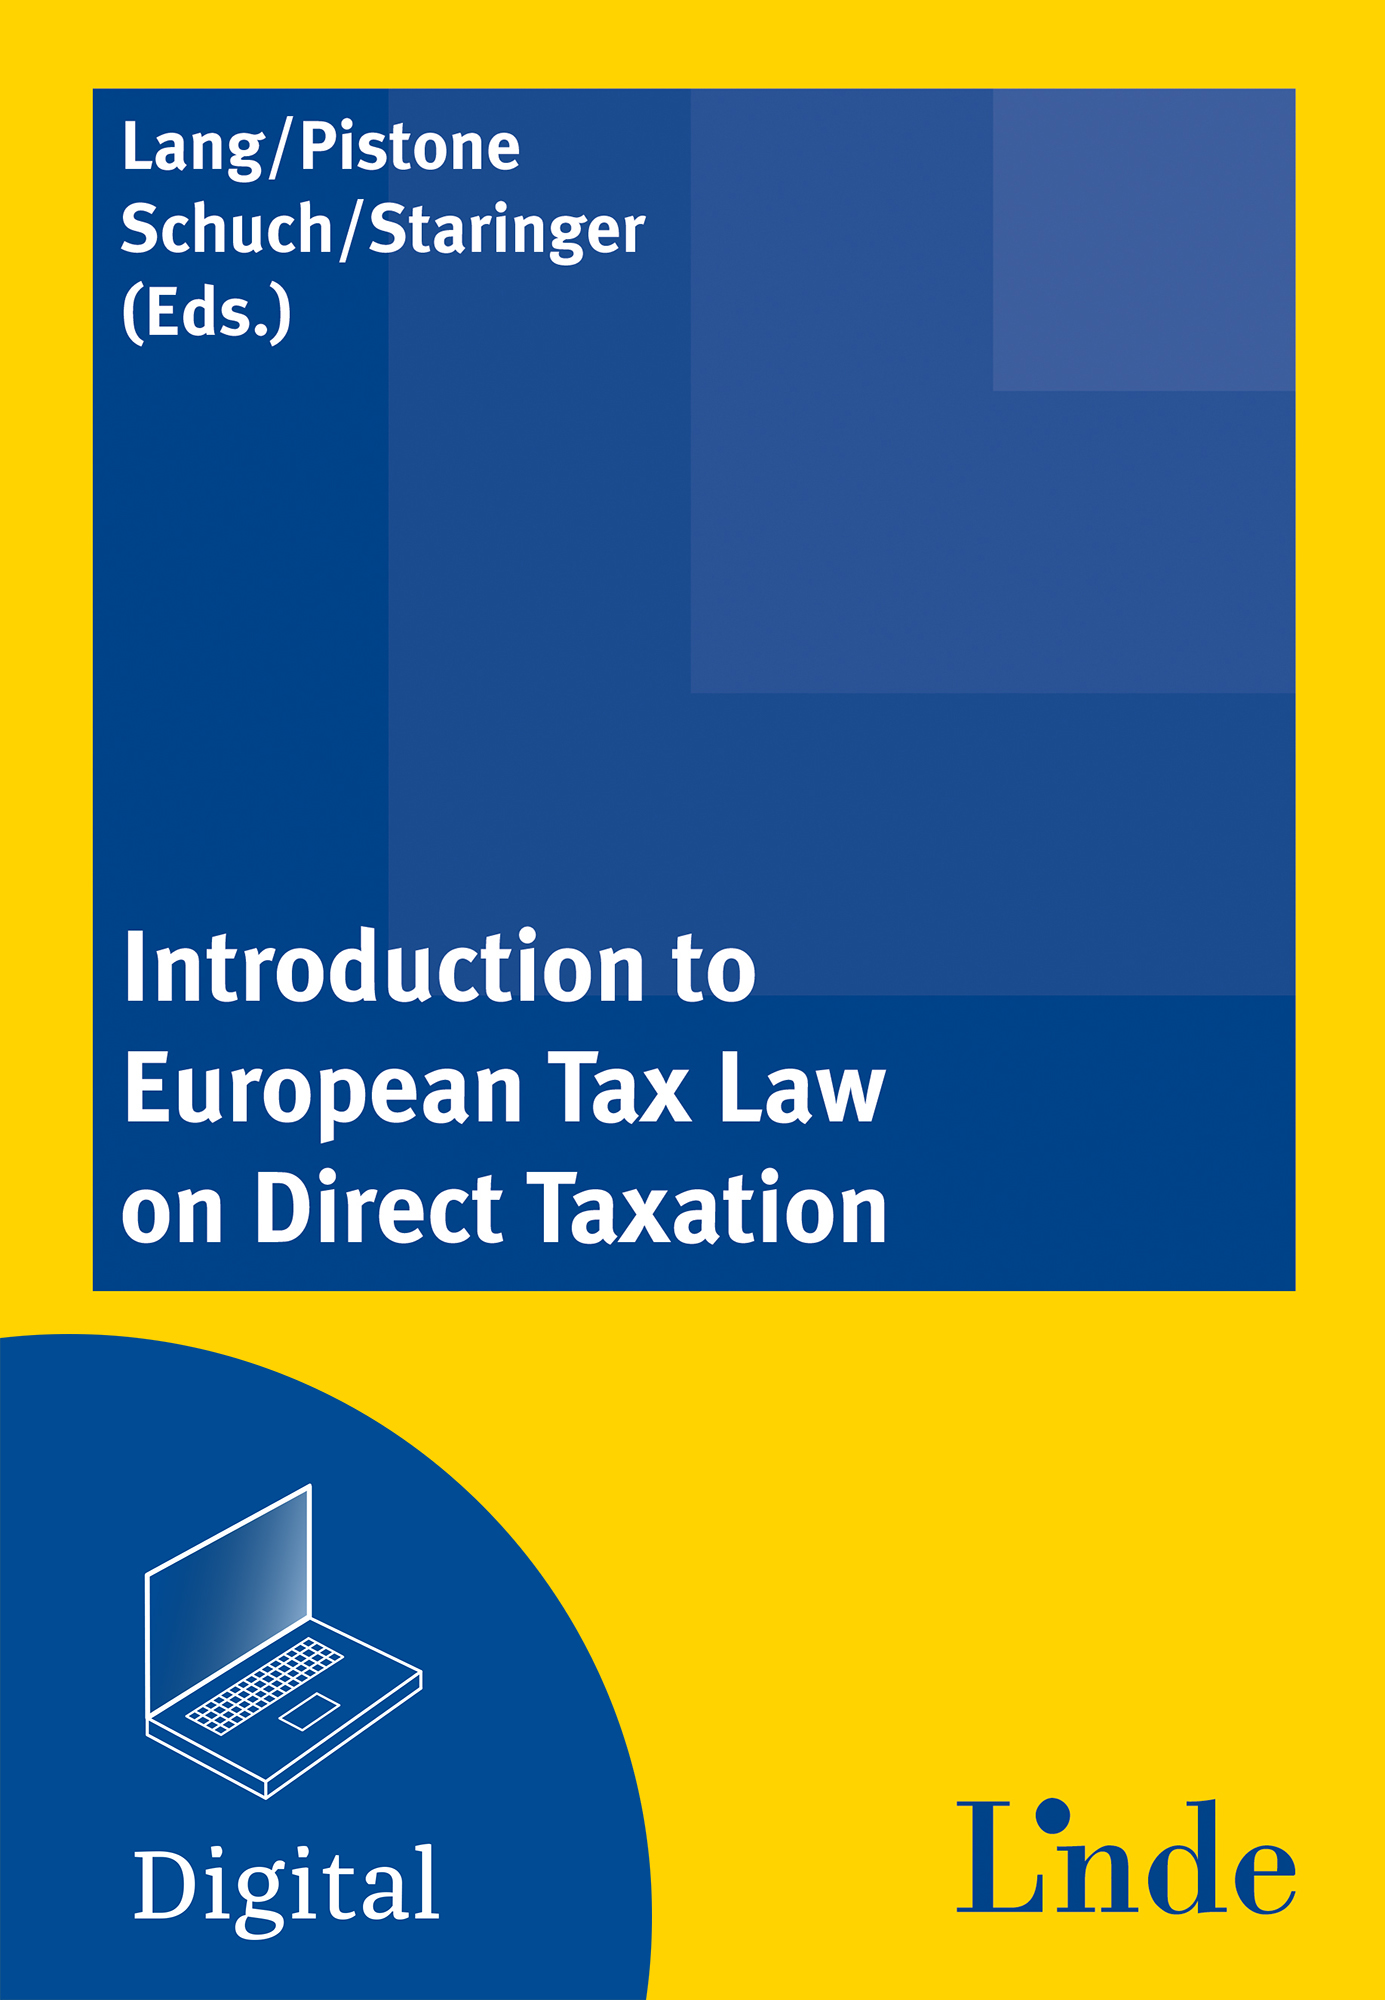 introduction to tax In the oxford introductions to us law: income tax law, edward mccaffery presents an accessible introduction to the major topics in the field of federal income taxation, such as income, deductions, and recognition of gains and losses.